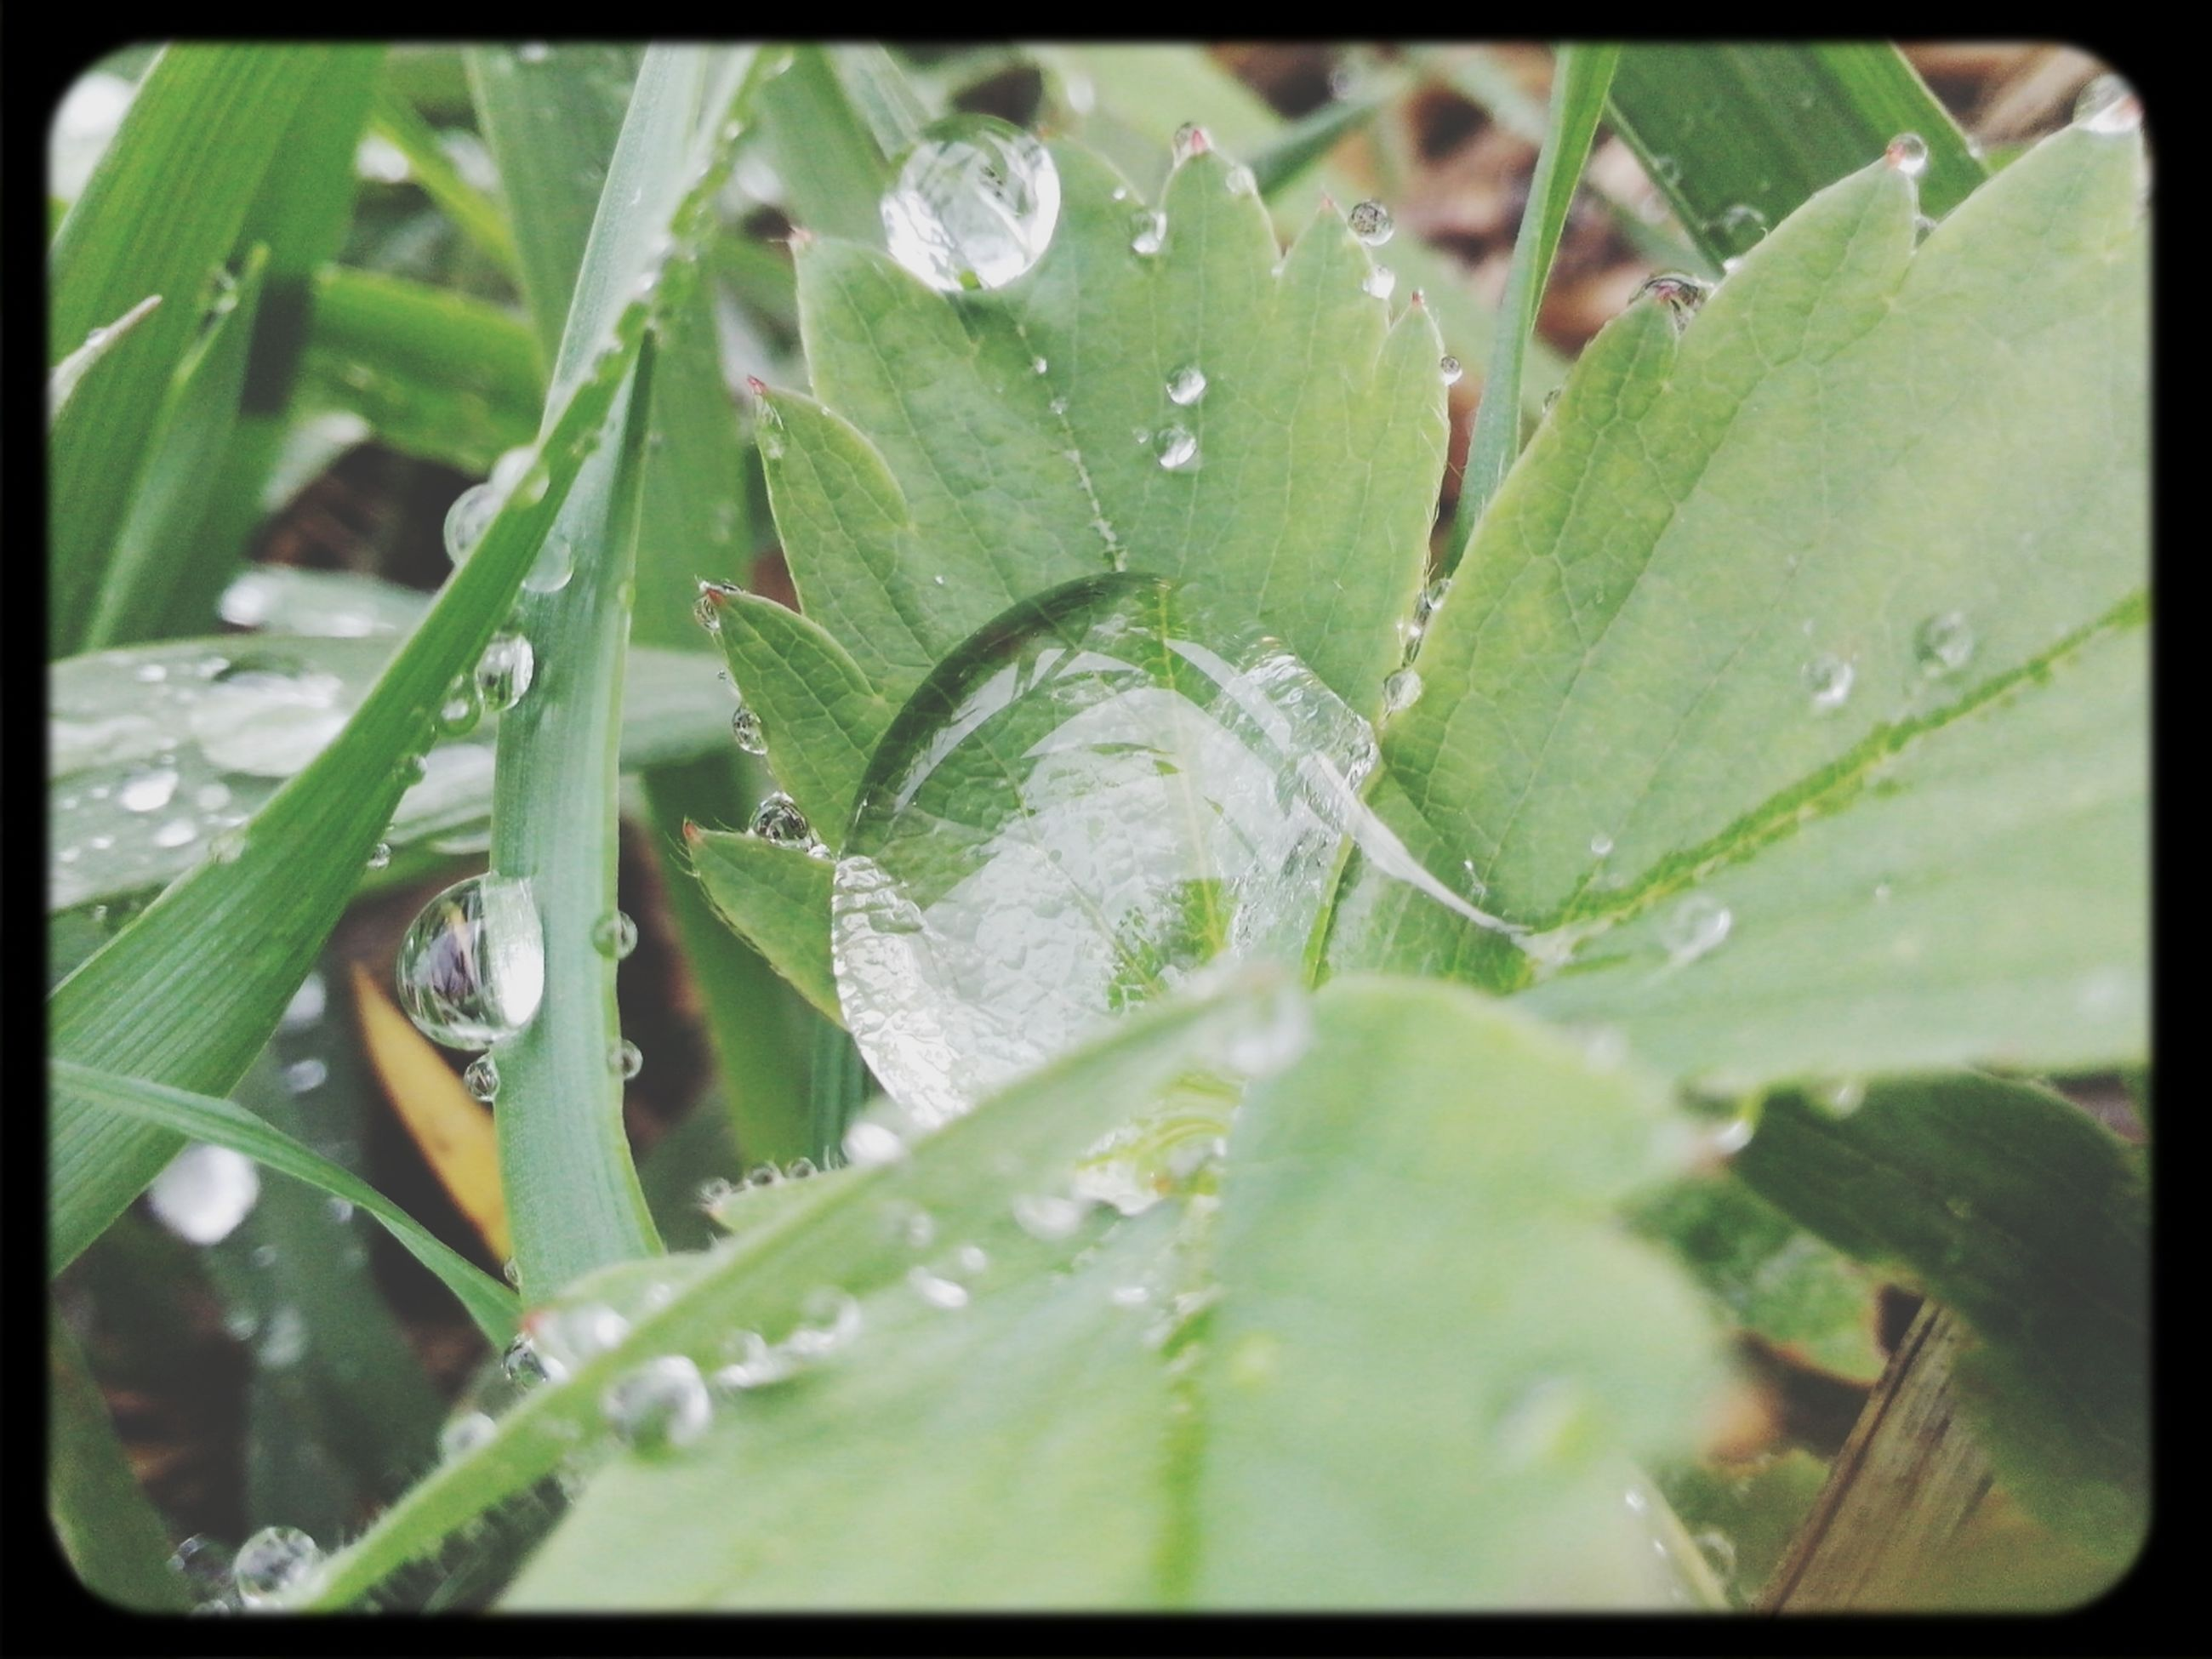 leaf, water, transfer print, drop, wet, close-up, green color, growth, freshness, auto post production filter, plant, nature, fragility, dew, beauty in nature, focus on foreground, selective focus, day, raindrop, high angle view